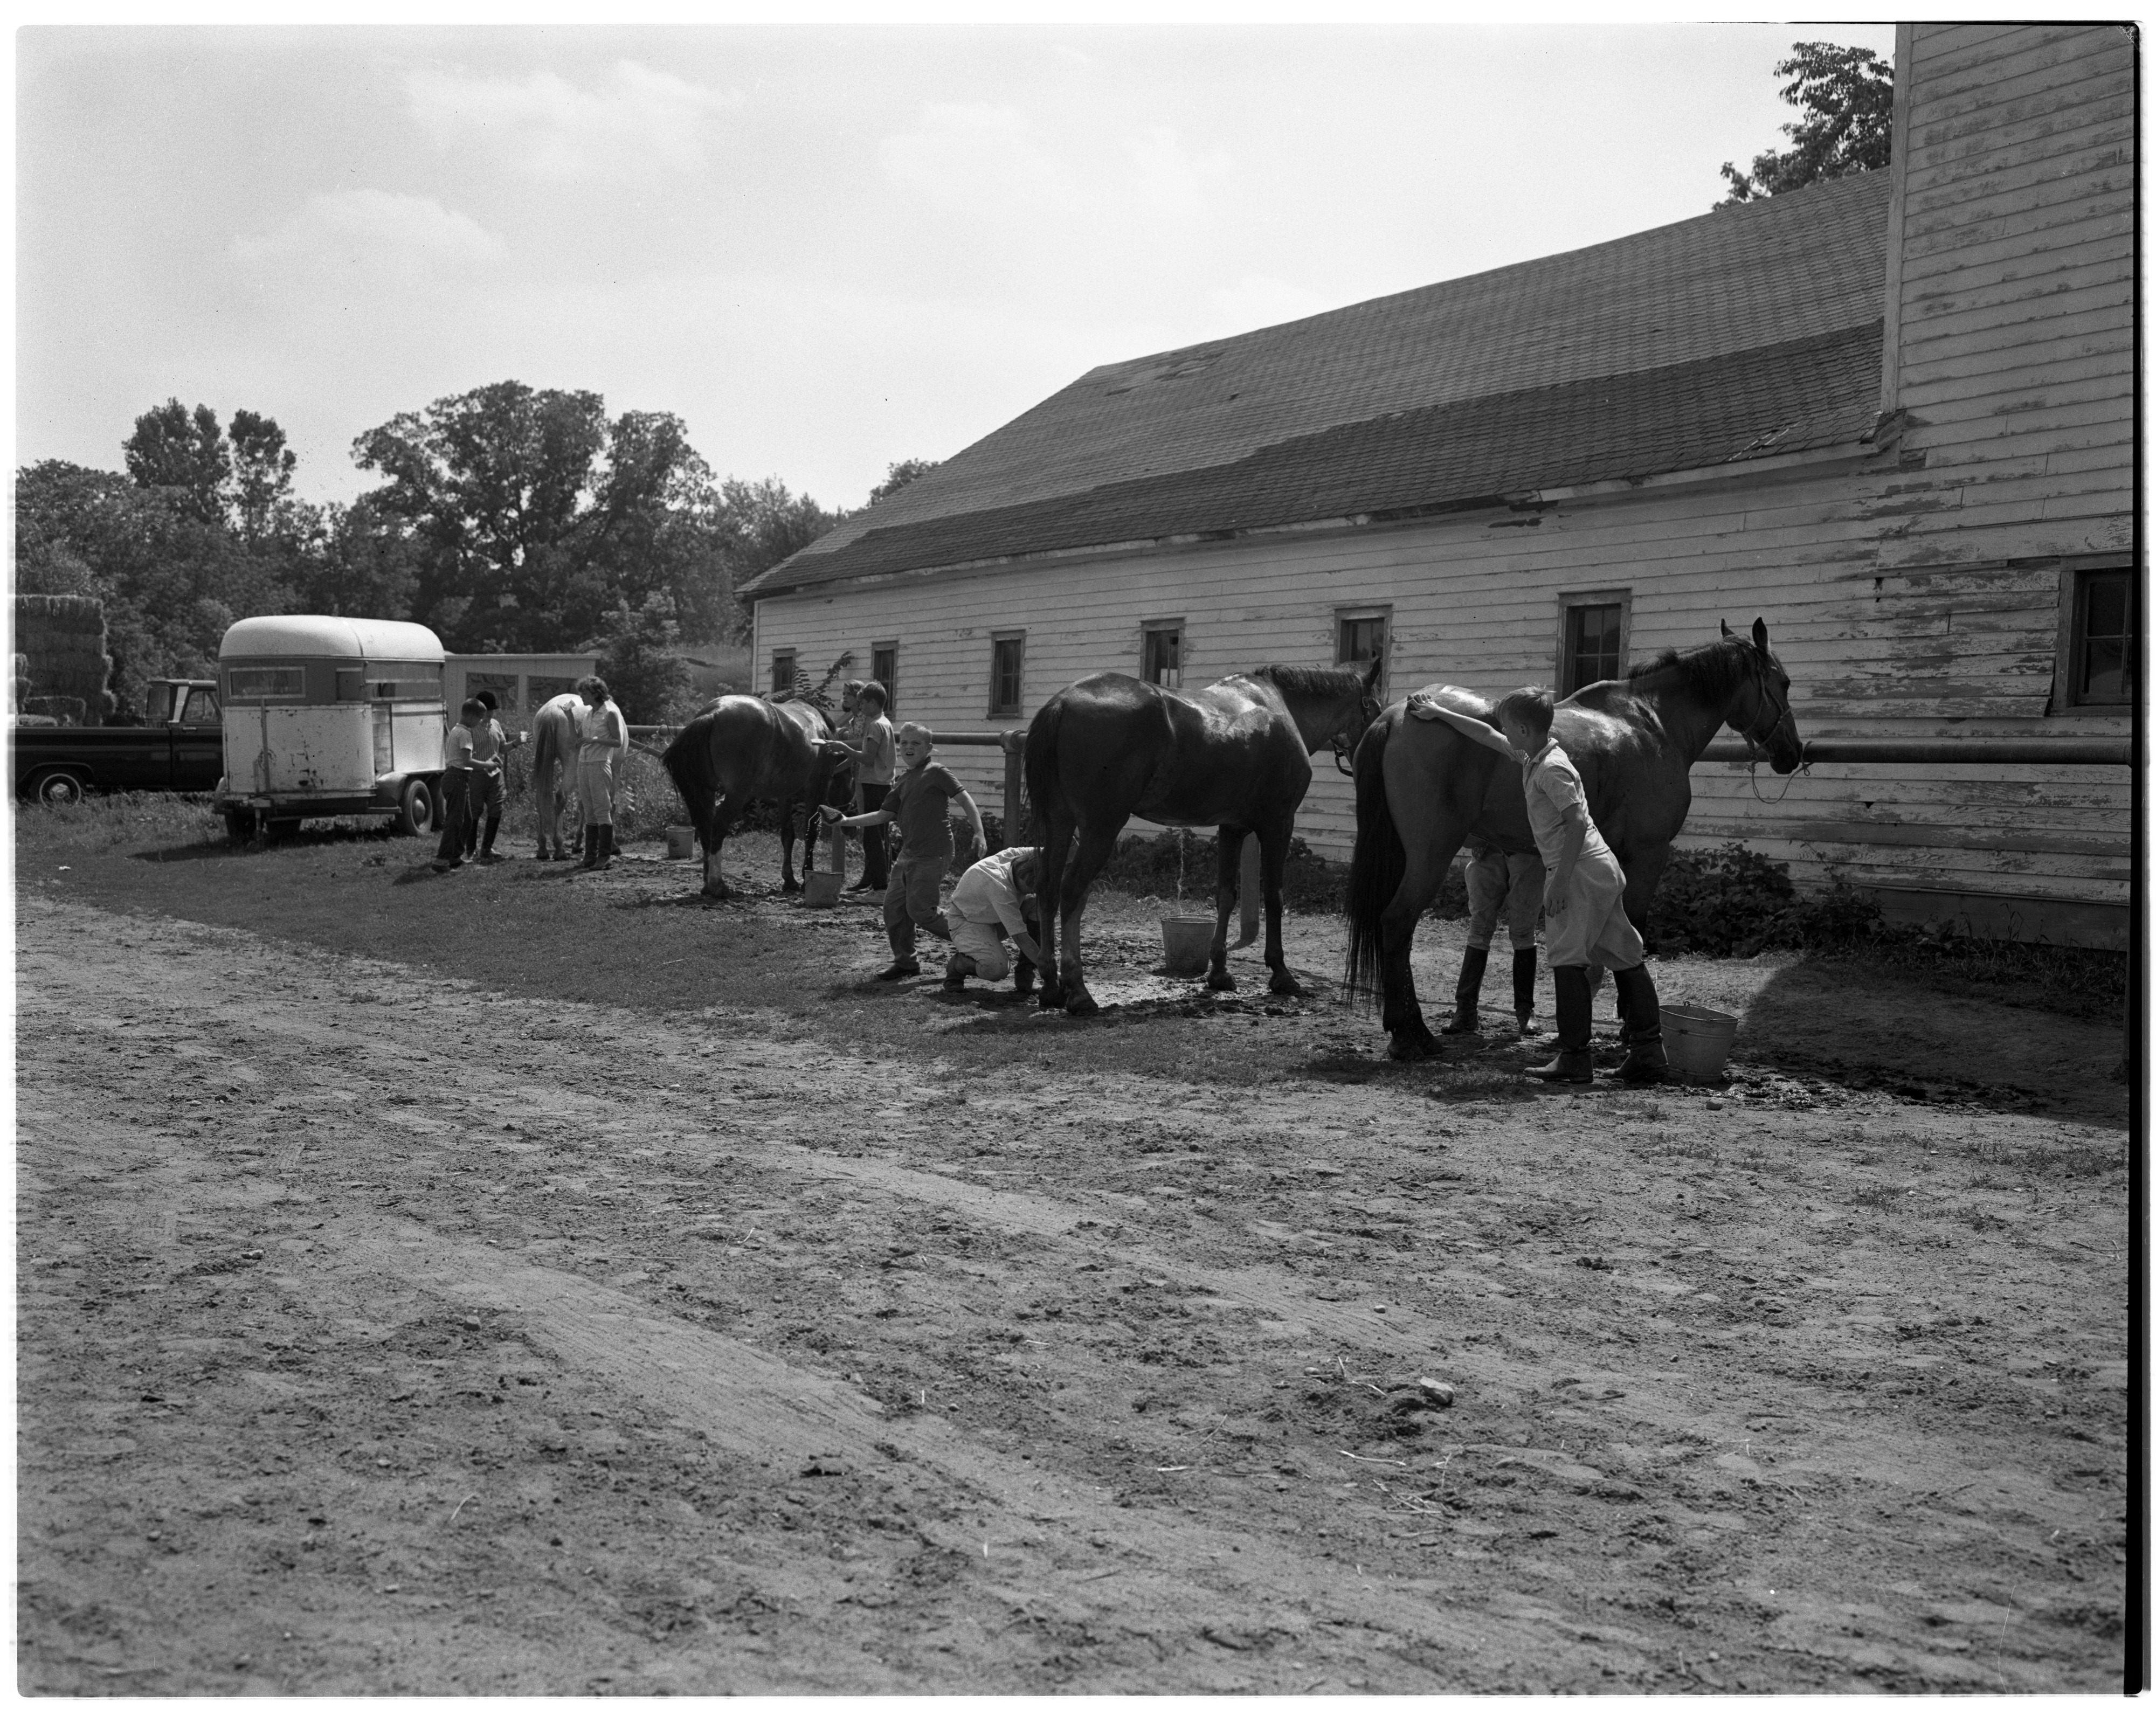 Grooming the Horses - Huron River Stables, July 1964 image